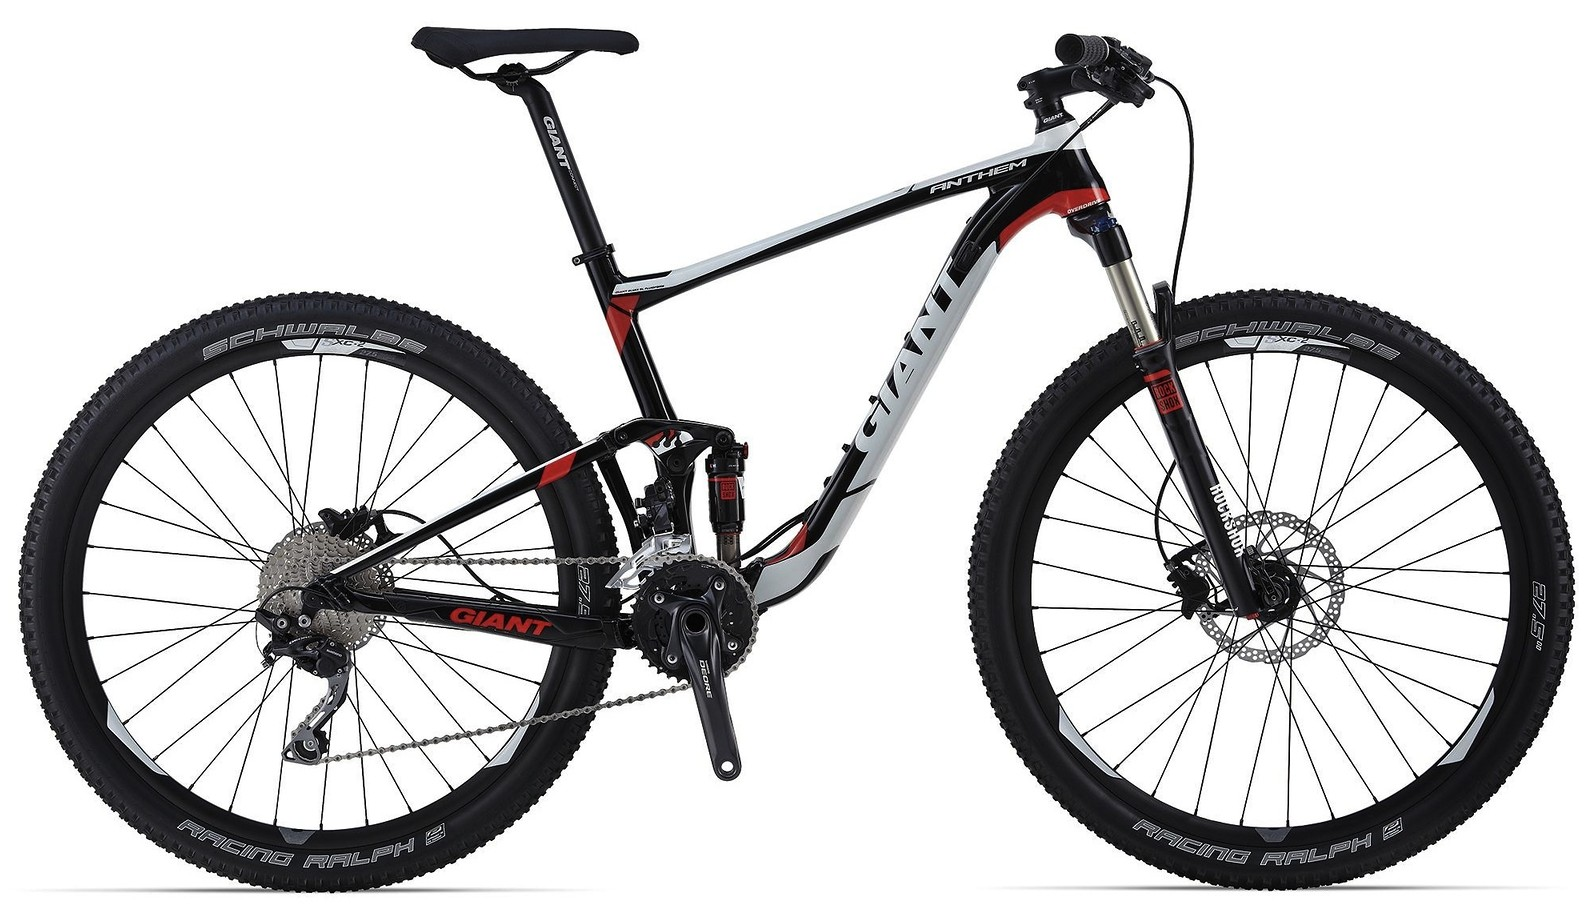 Continental Bike Tires >> 2014 Giant Anthem 27.5 3 Bike - Reviews, Comparisons ...